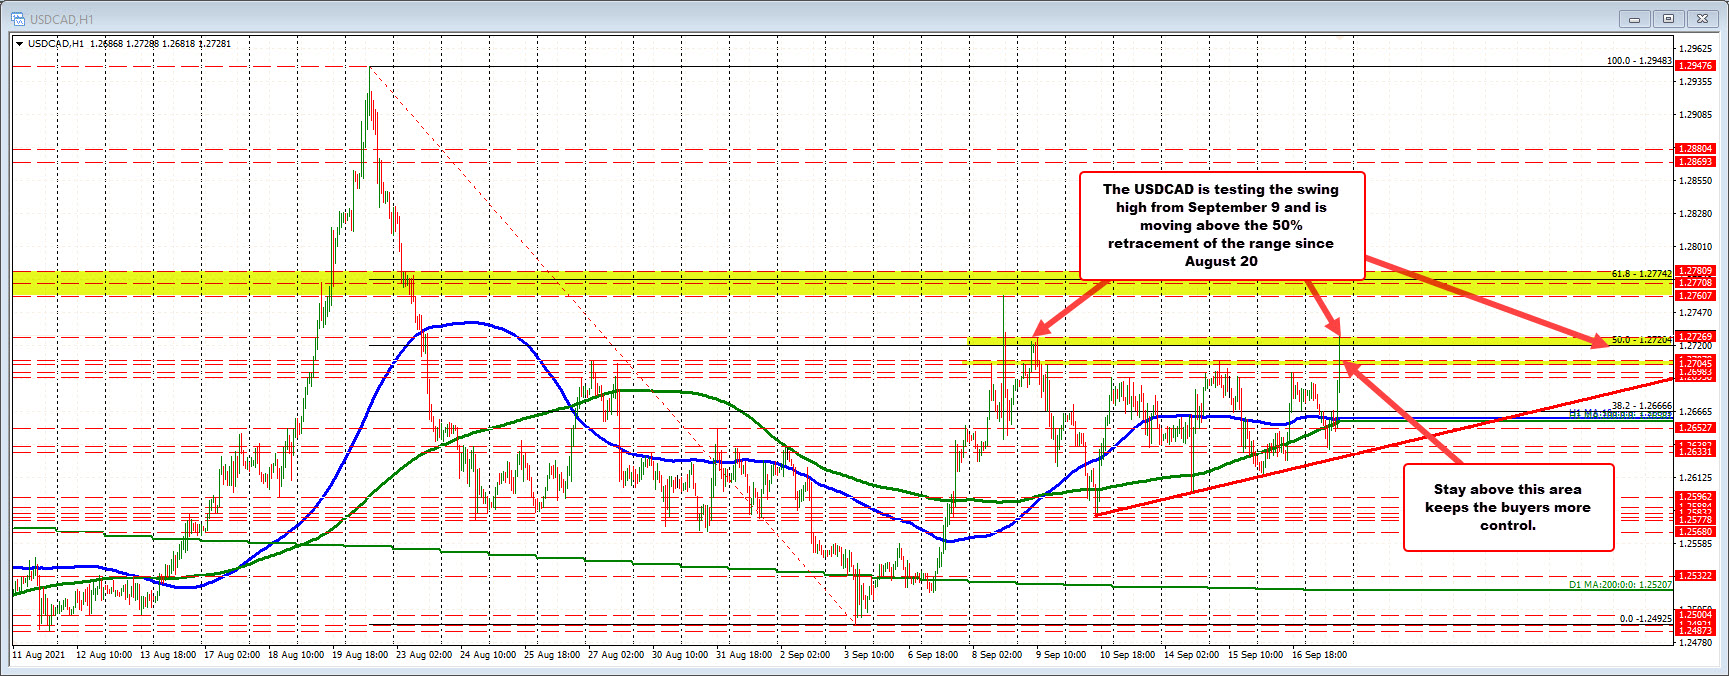 USDCAD trades to new week highs